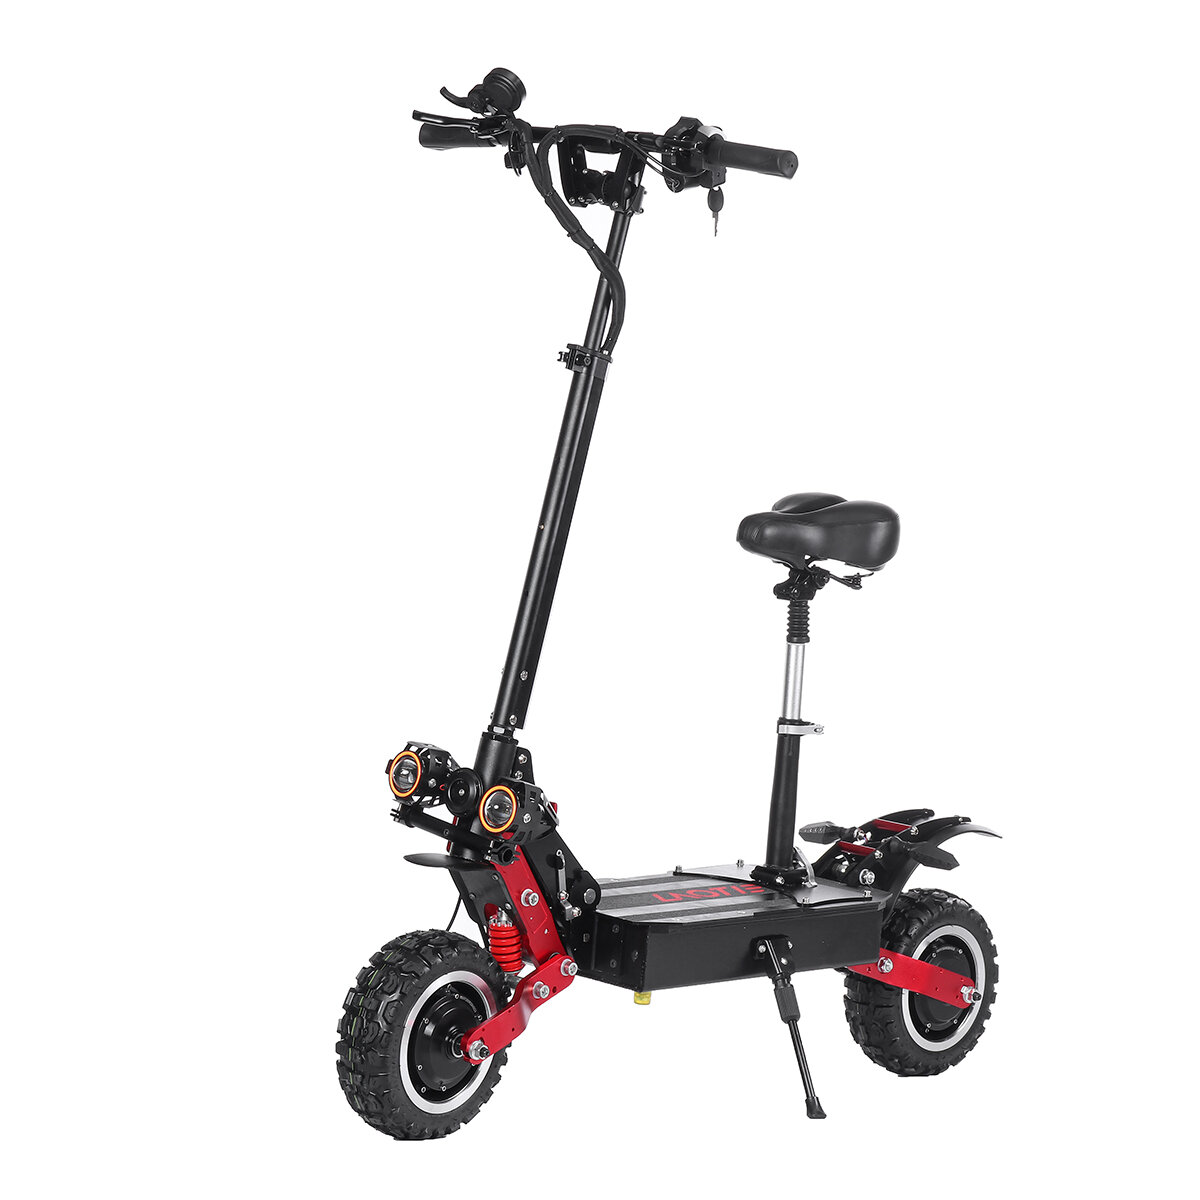 LAOTIE® ES18P 60V 21700 Battery 33.6Ah 2800W*2 Dual Motor Foldable Electric Scooter With Saddle 85Km/h Top Speed 120km Mileage 200kg Bearing EU Plug